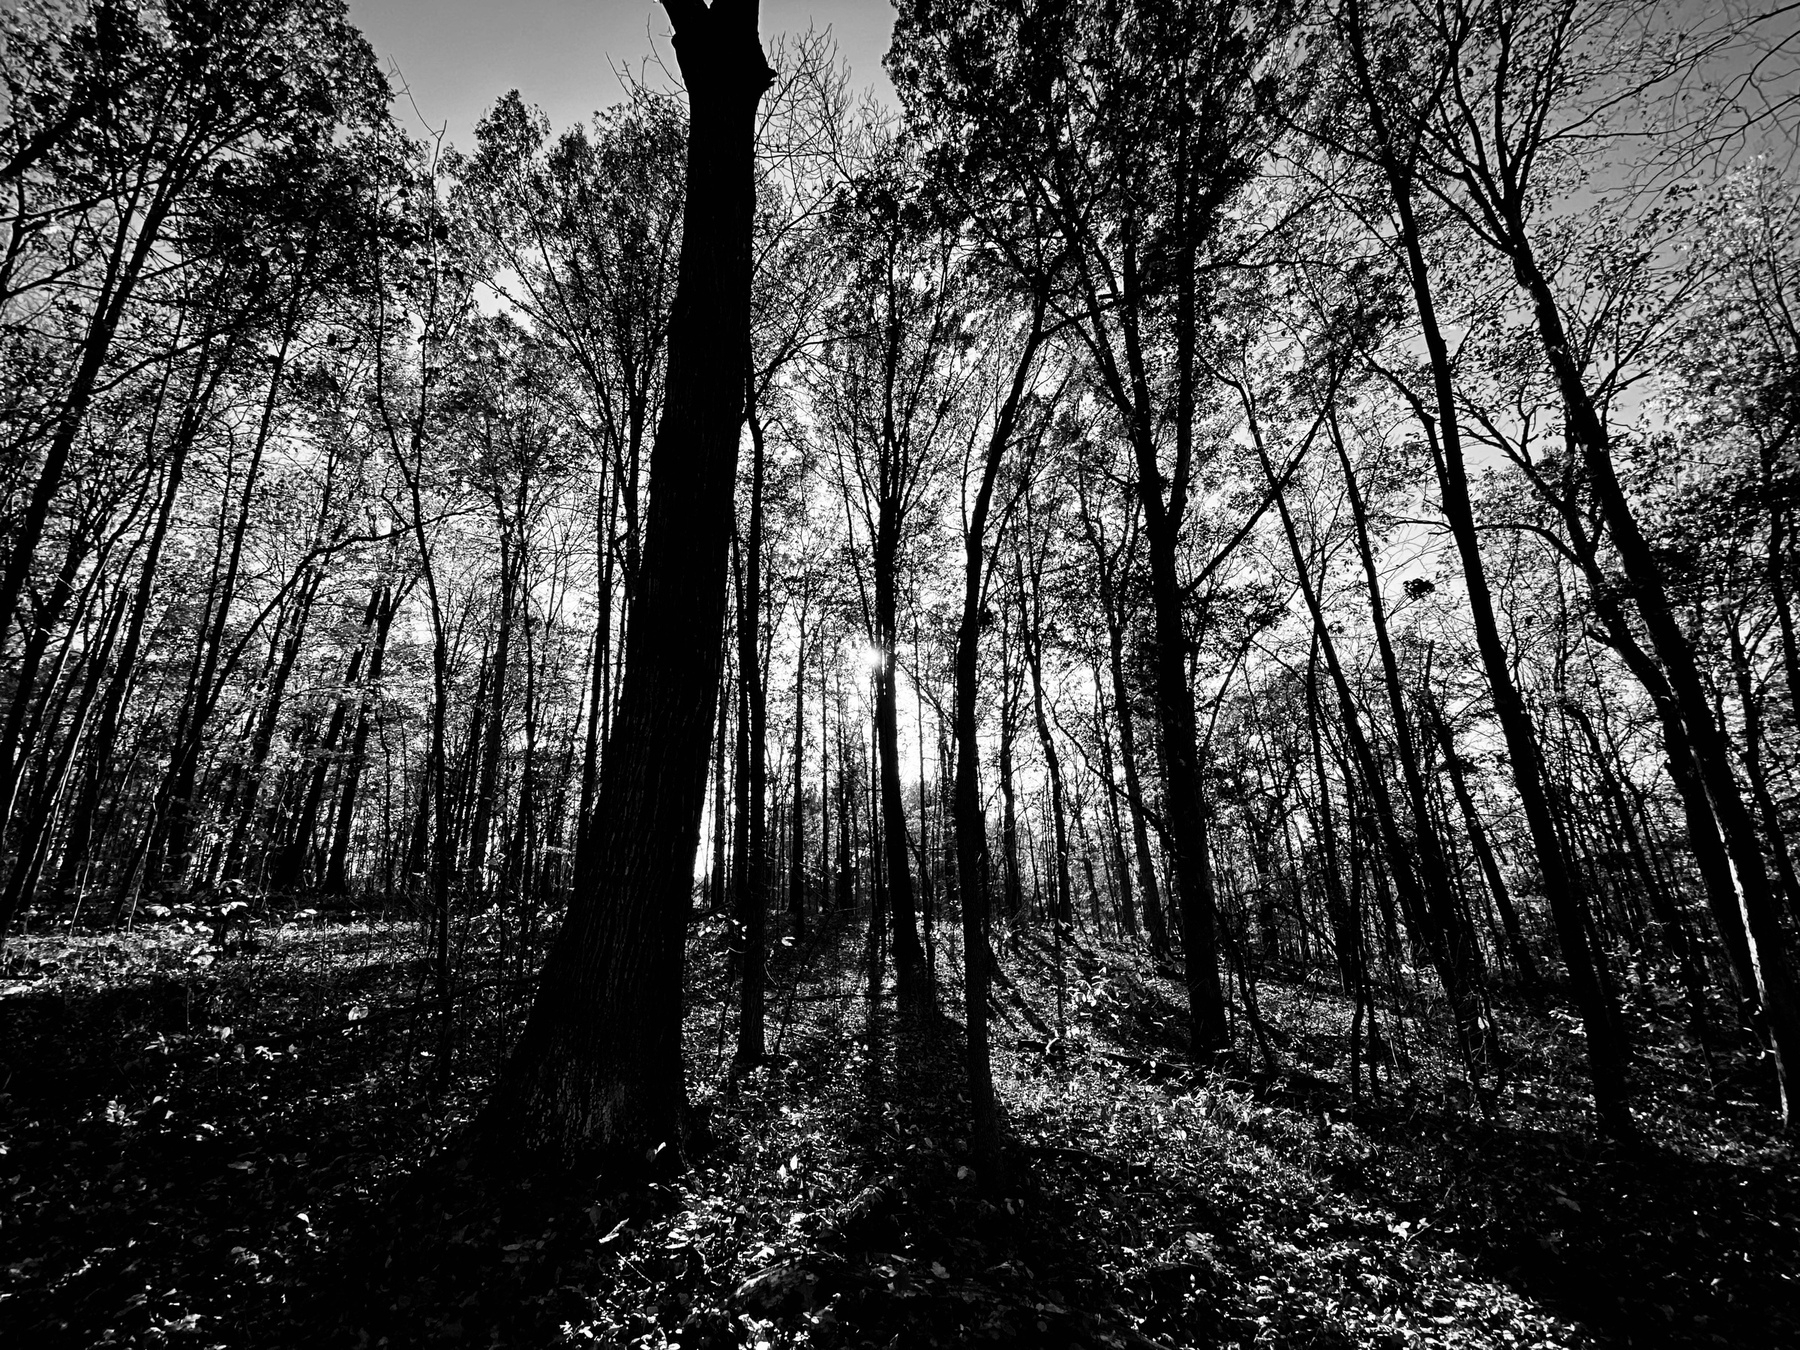 Forrest of trees in Fall in black and white